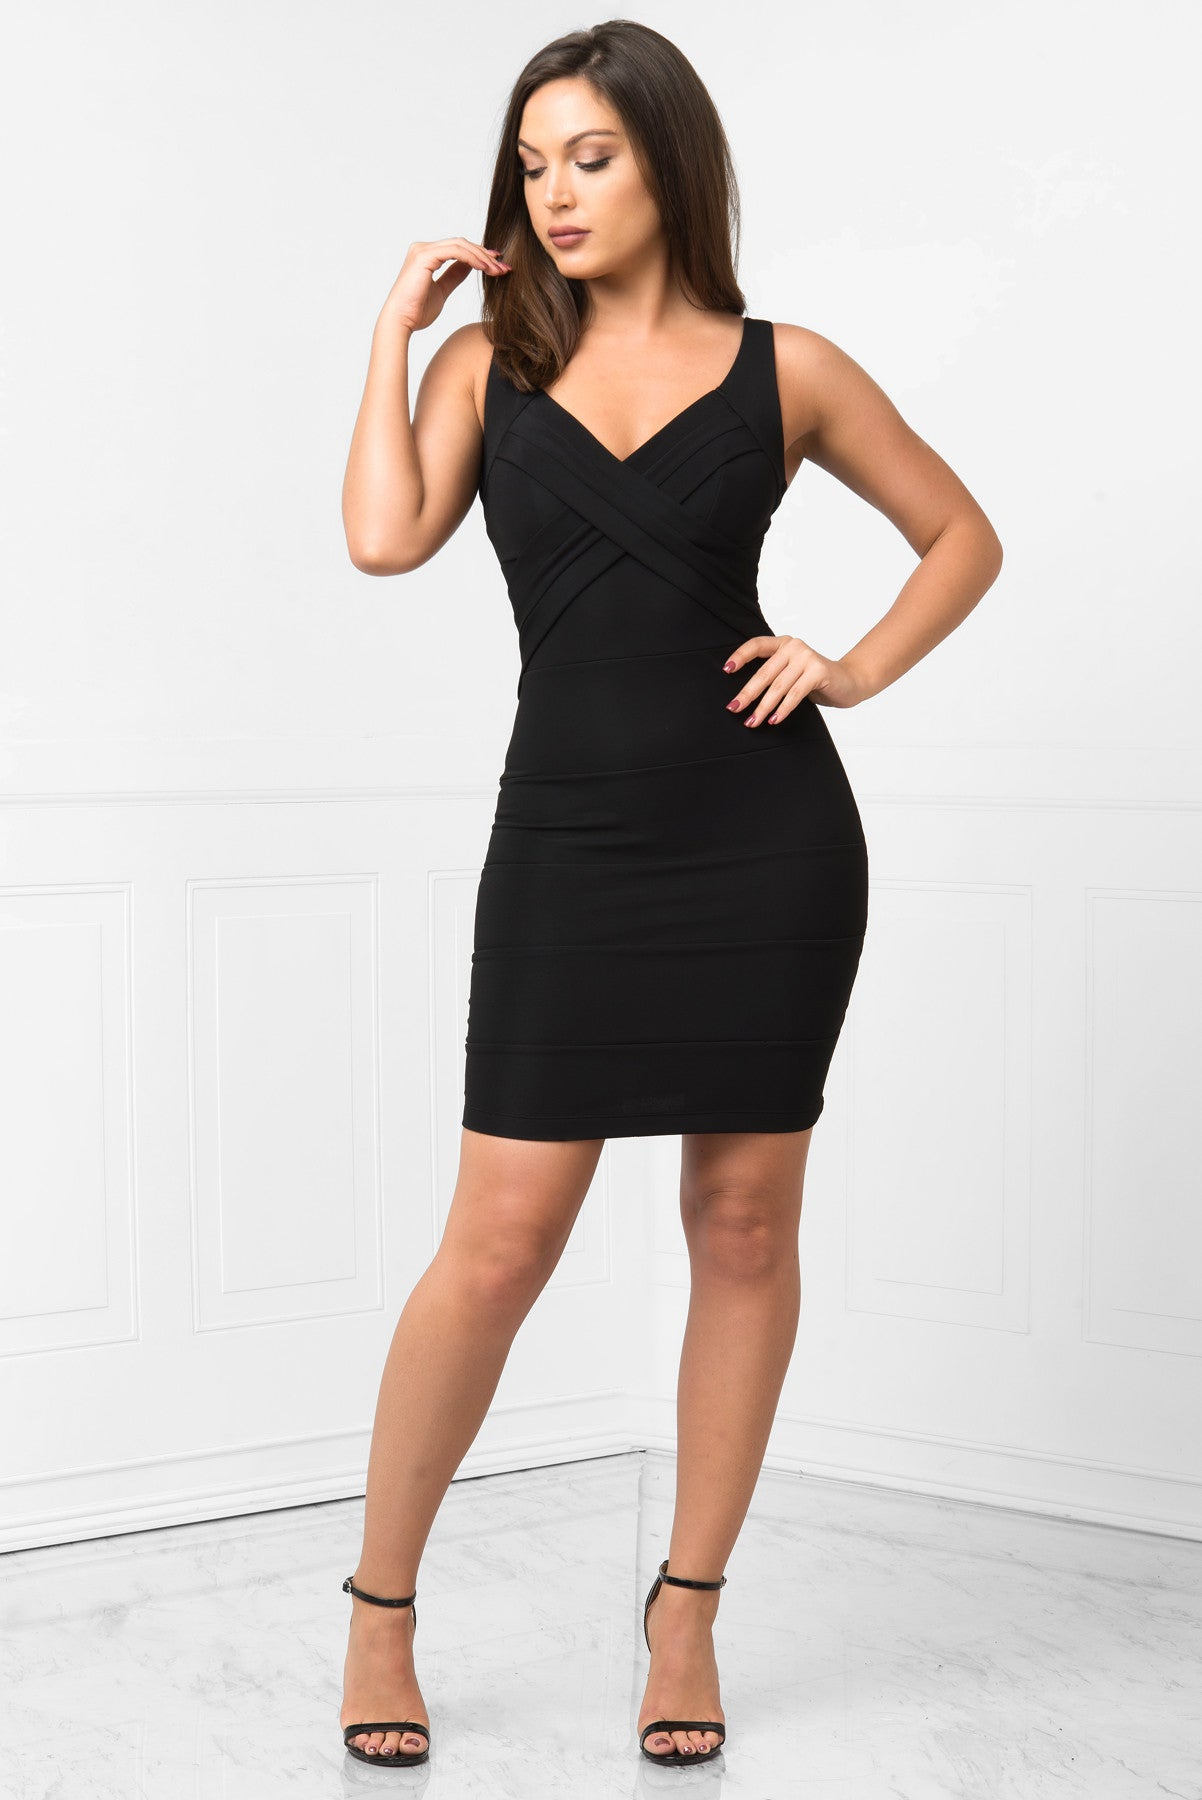 Mayte Black Mini Dress - Fashion Effect Store  - 1